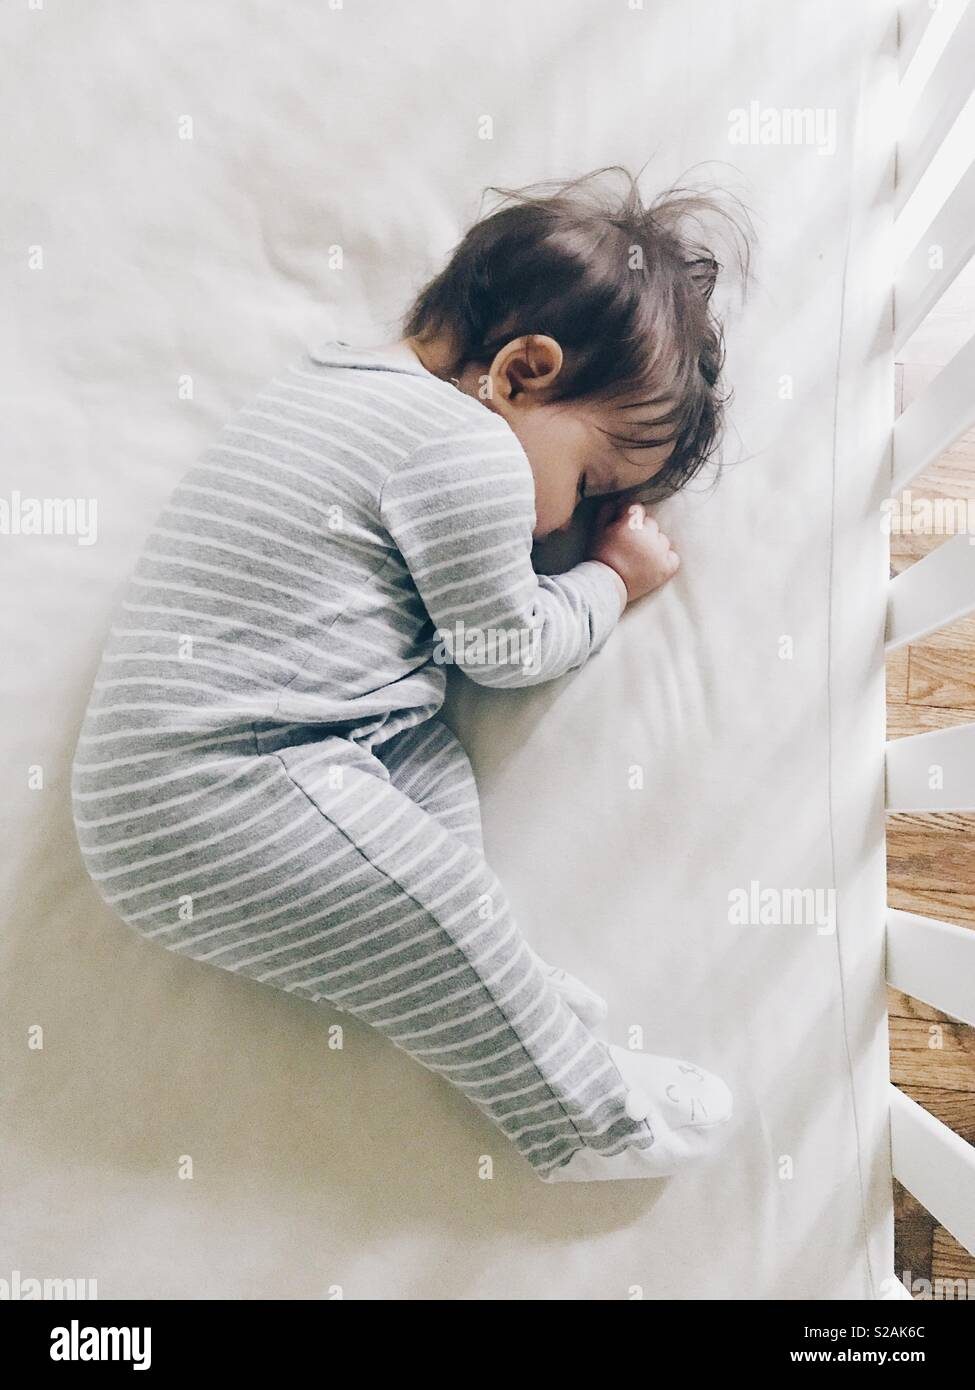 A young baby girl curled up asleep in her crib. - Stock Image